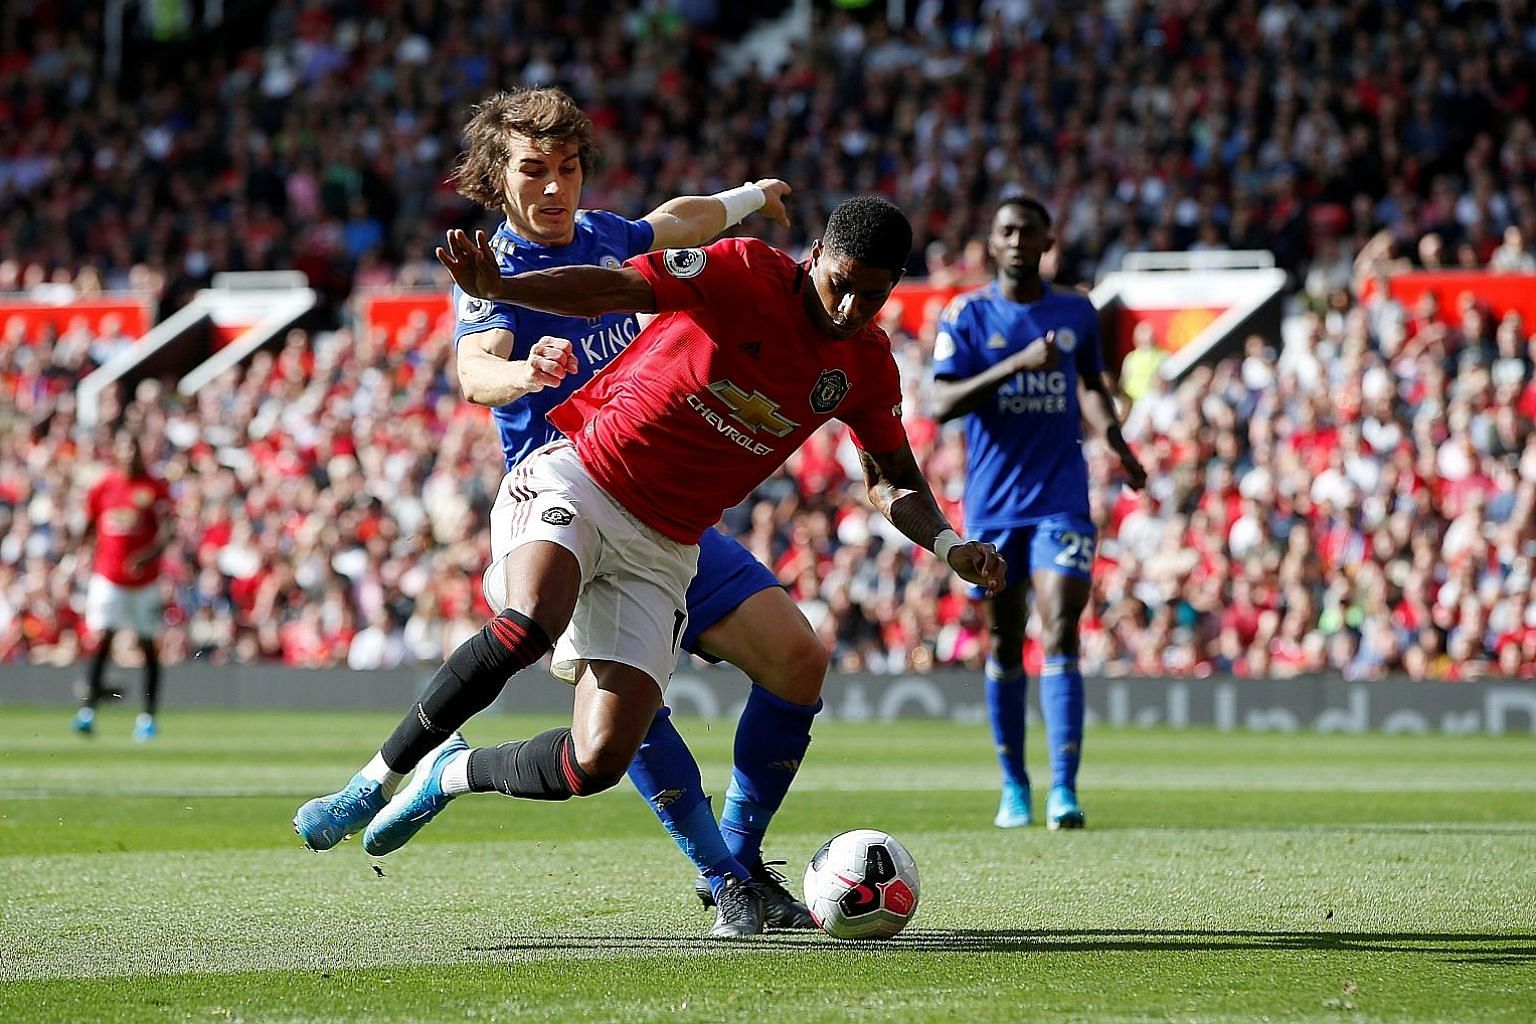 Manchester United's Marcus Rashford going to ground after a challenge by Leicester defender Caglar Soyuncu, earning a penalty from which the forward duly scored.